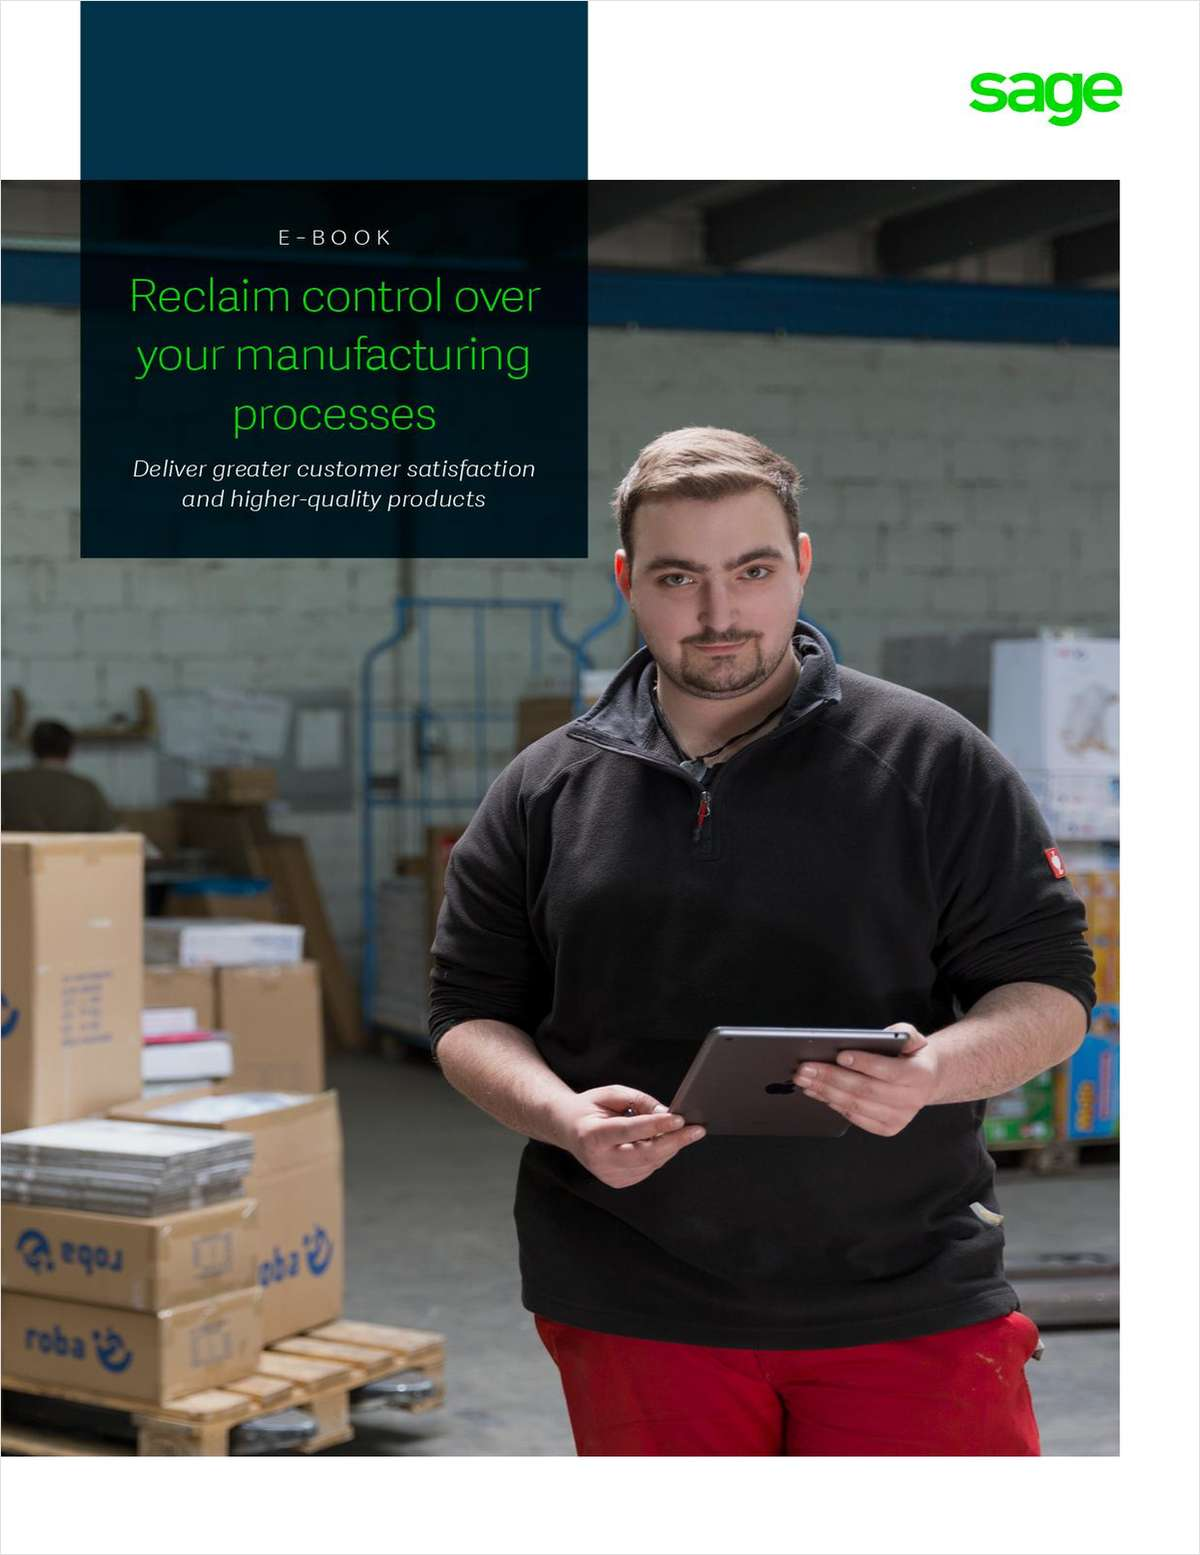 Reclaim Control Over Your Manufacturing Processes